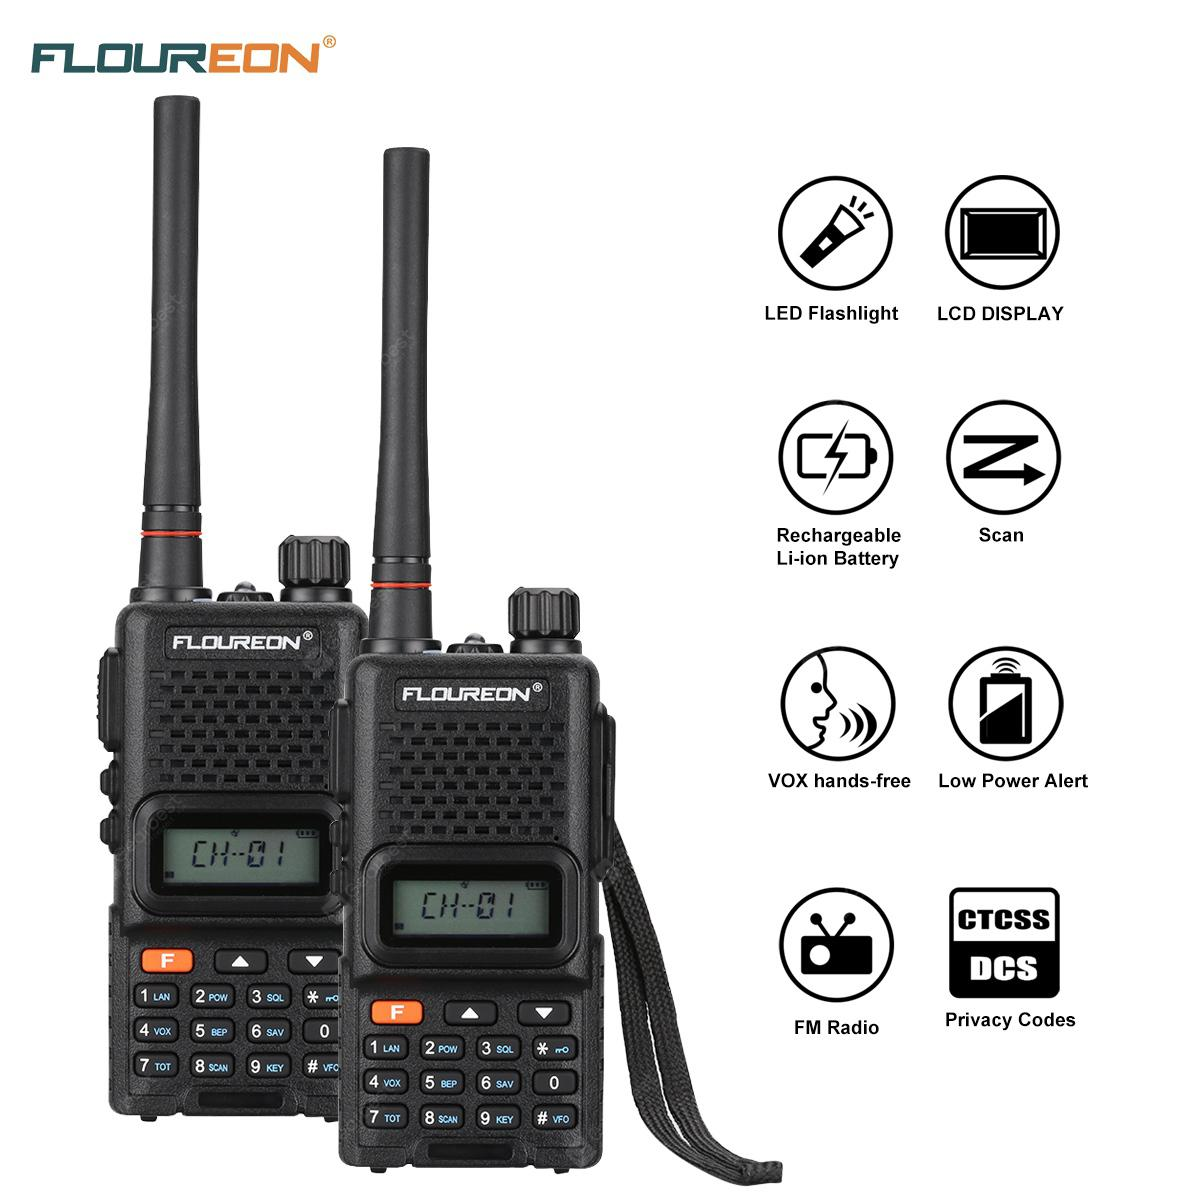 FLOUREON 16 Channel 2 Pack Handheld CTCSS/DCS Code Large LCD Display keypad Twins  FM Walkie Talkies Call Wireless Phone 2-Way Radio 7KM Range Programmable Interphone EU - BLACK